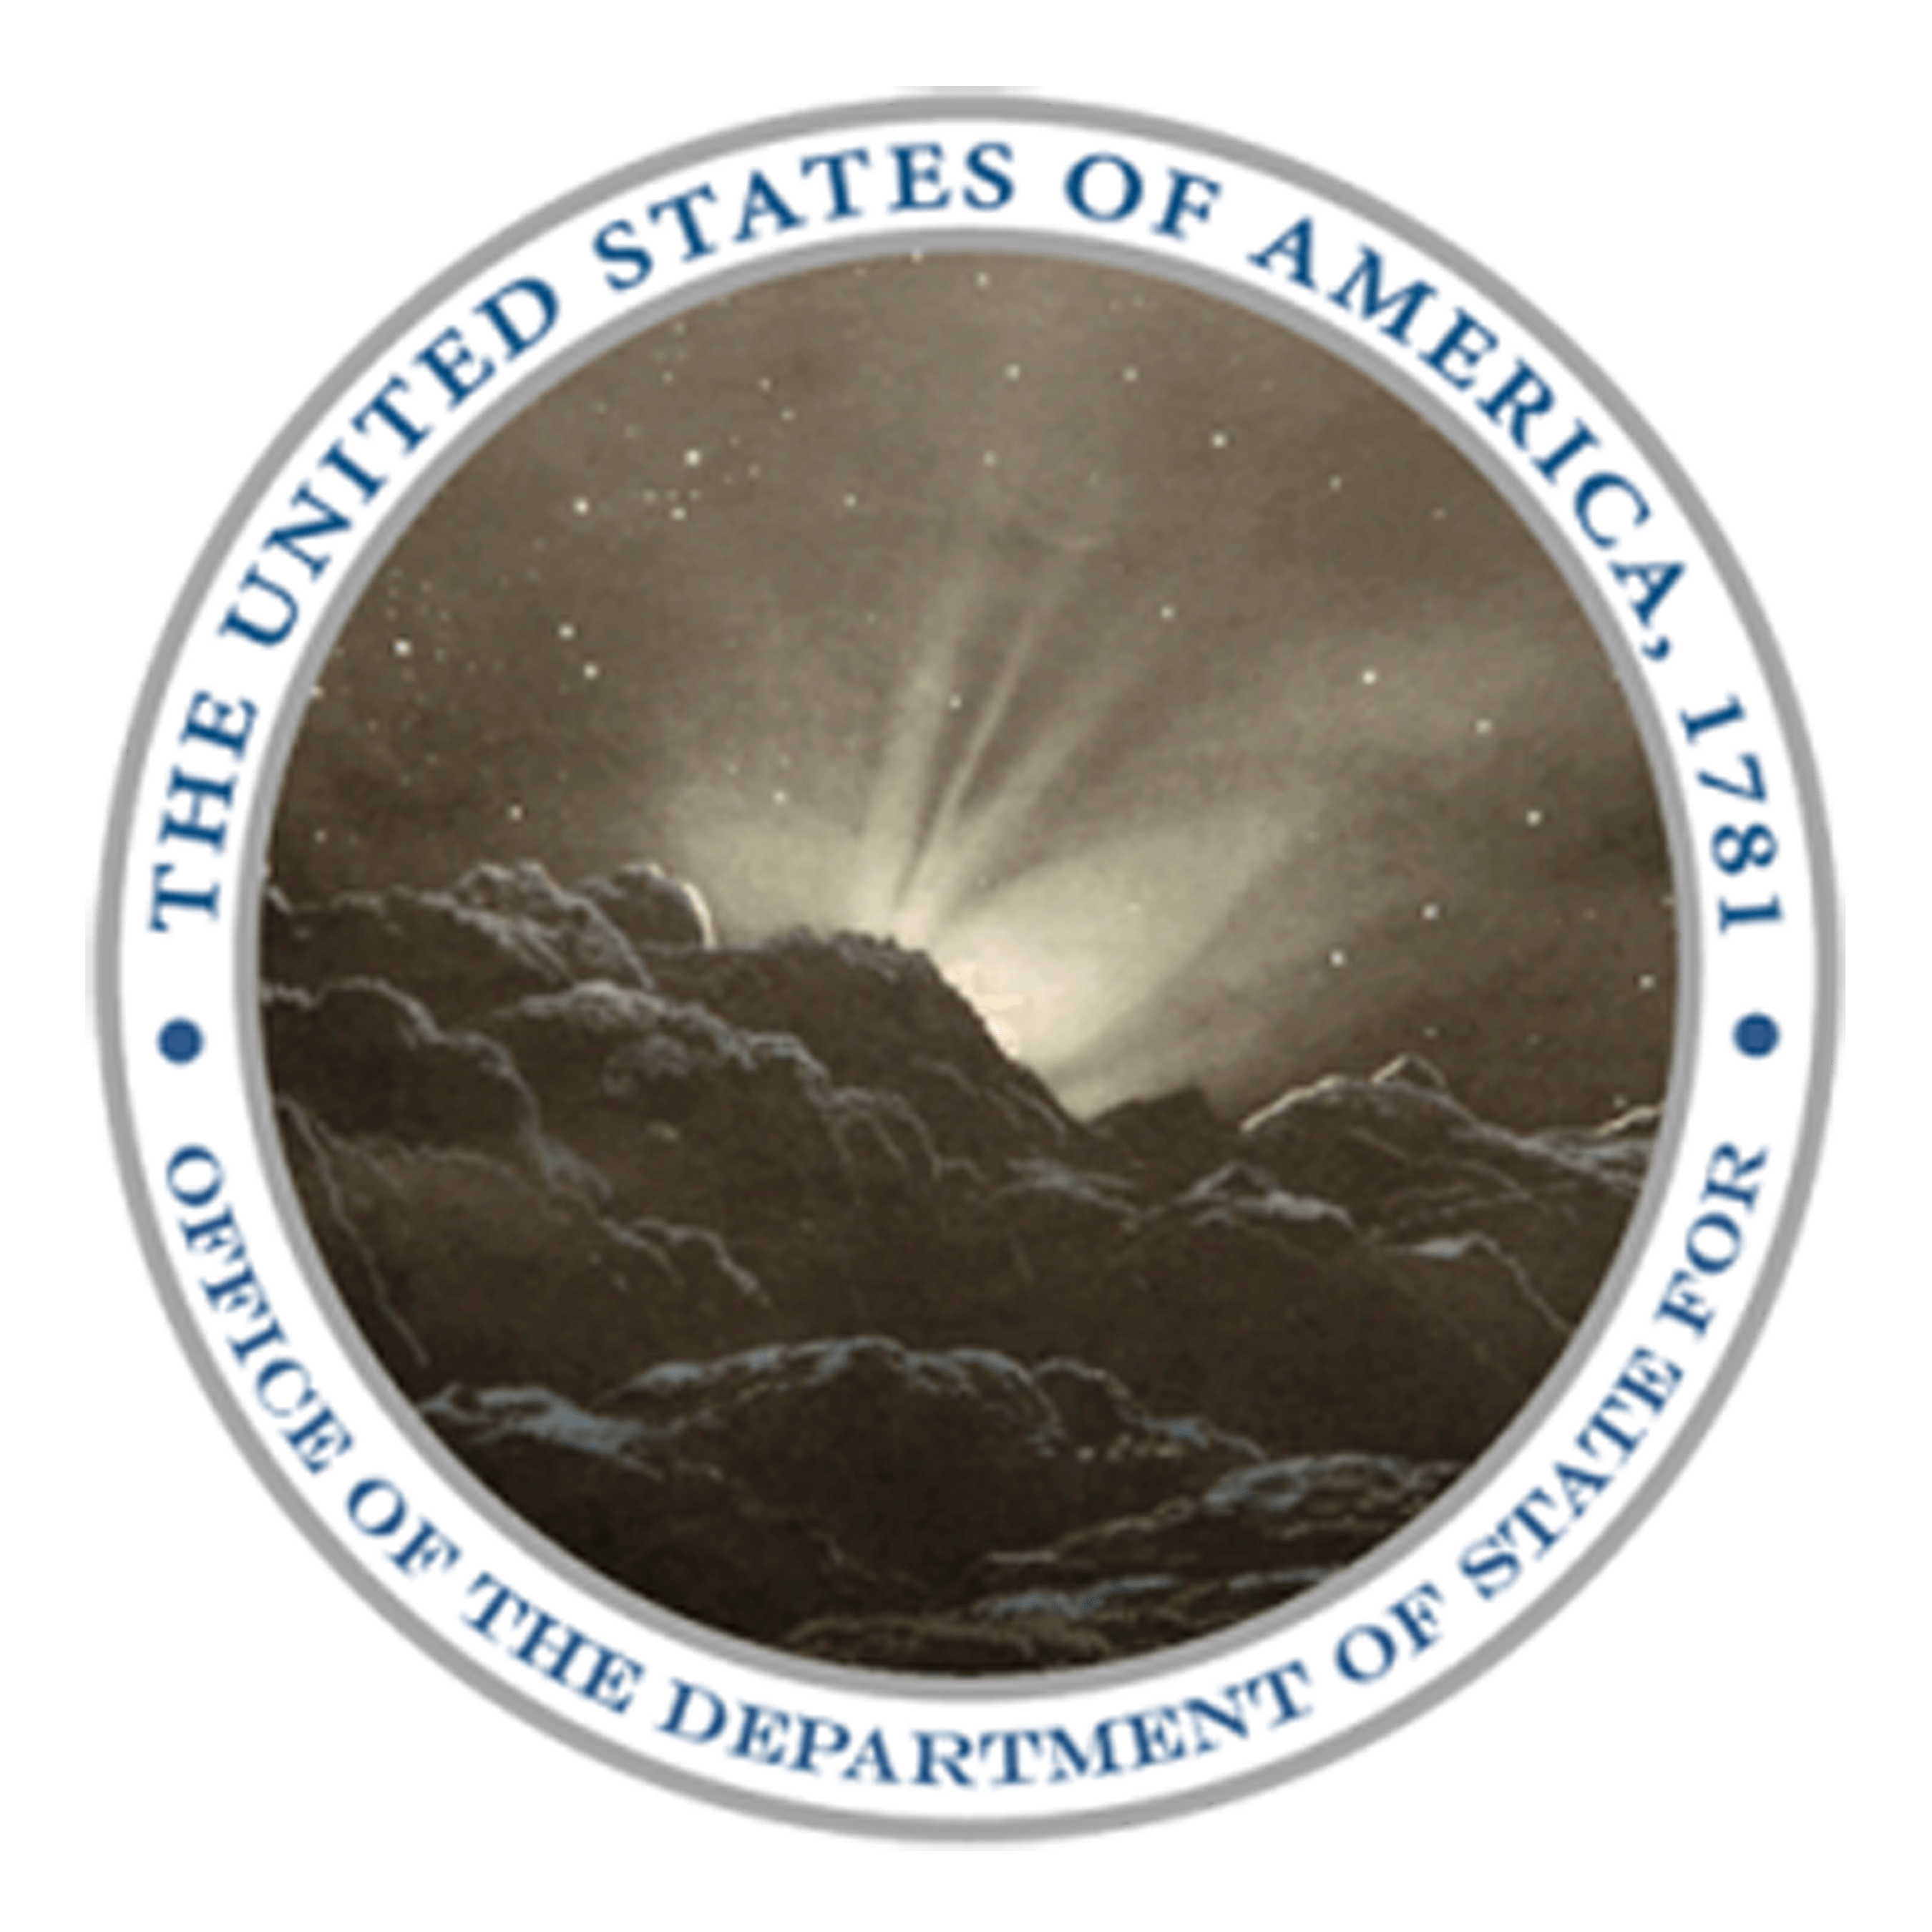 The United States, In Congress Assembled: PROCLAMATION OF DISSOLUTION OF THE BANK OF NORTH AMERICA. Seal-Department-of-State